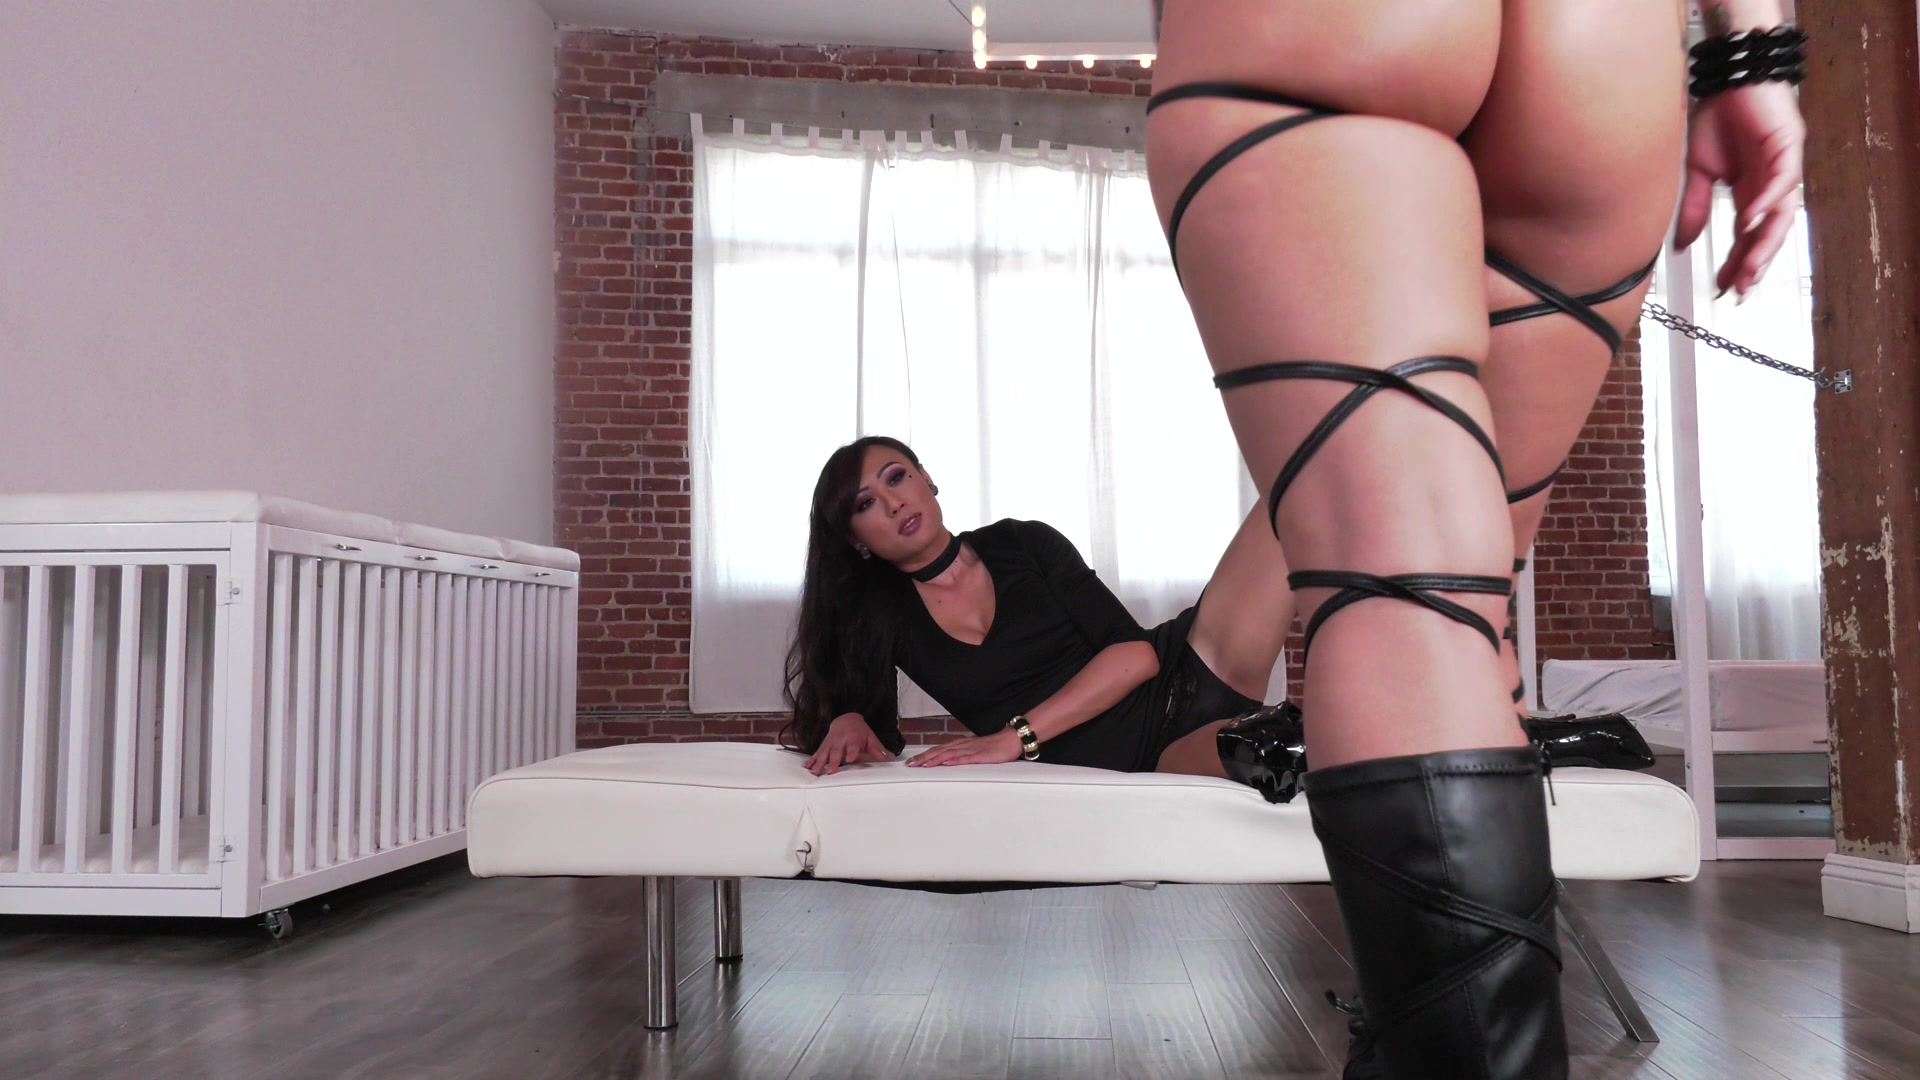 Scene with Venus Lux and Katrina Jade - image 7 out of 20